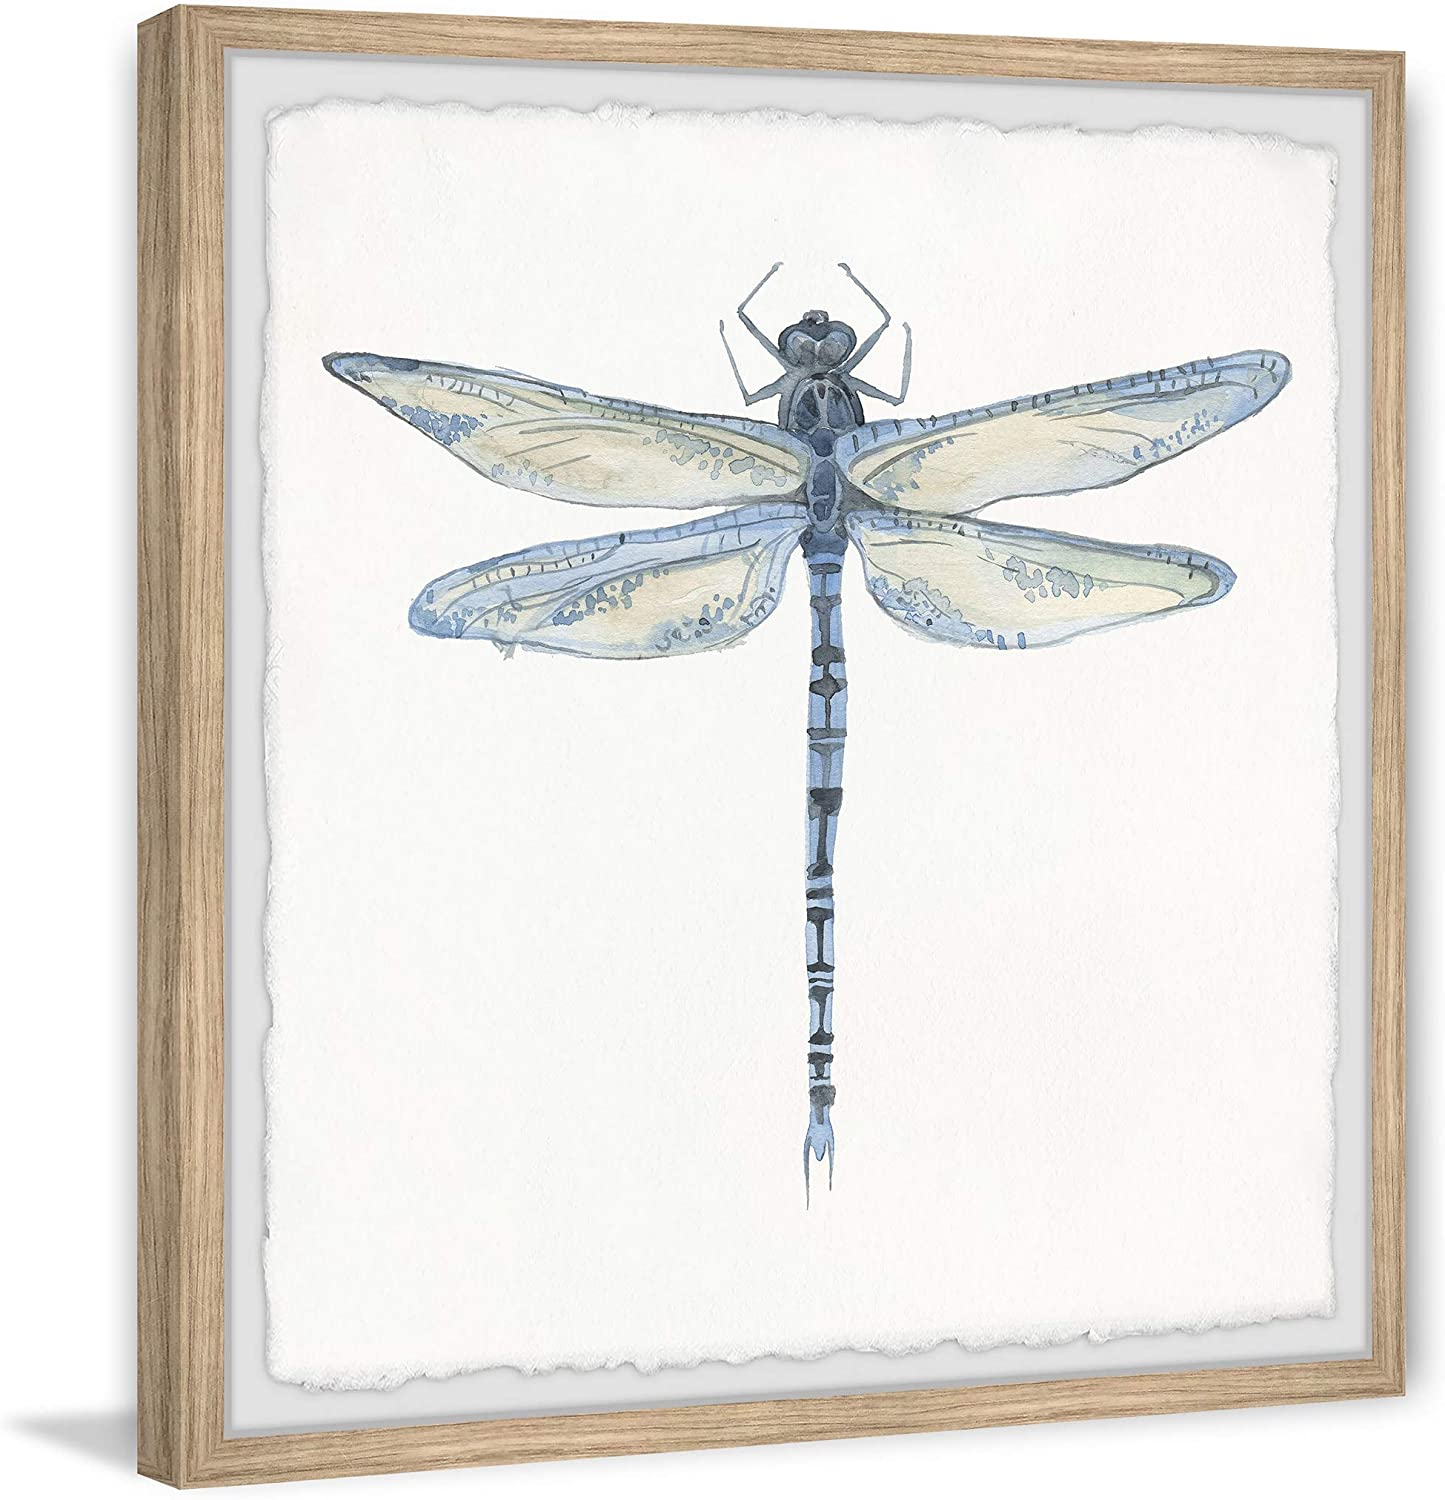 Collectibles Wooden Dragonfly Wall Art Dragonflies Shabby Cottage Chic Hanging Decor Set Of 2 Dragonflies Cloudtrack In